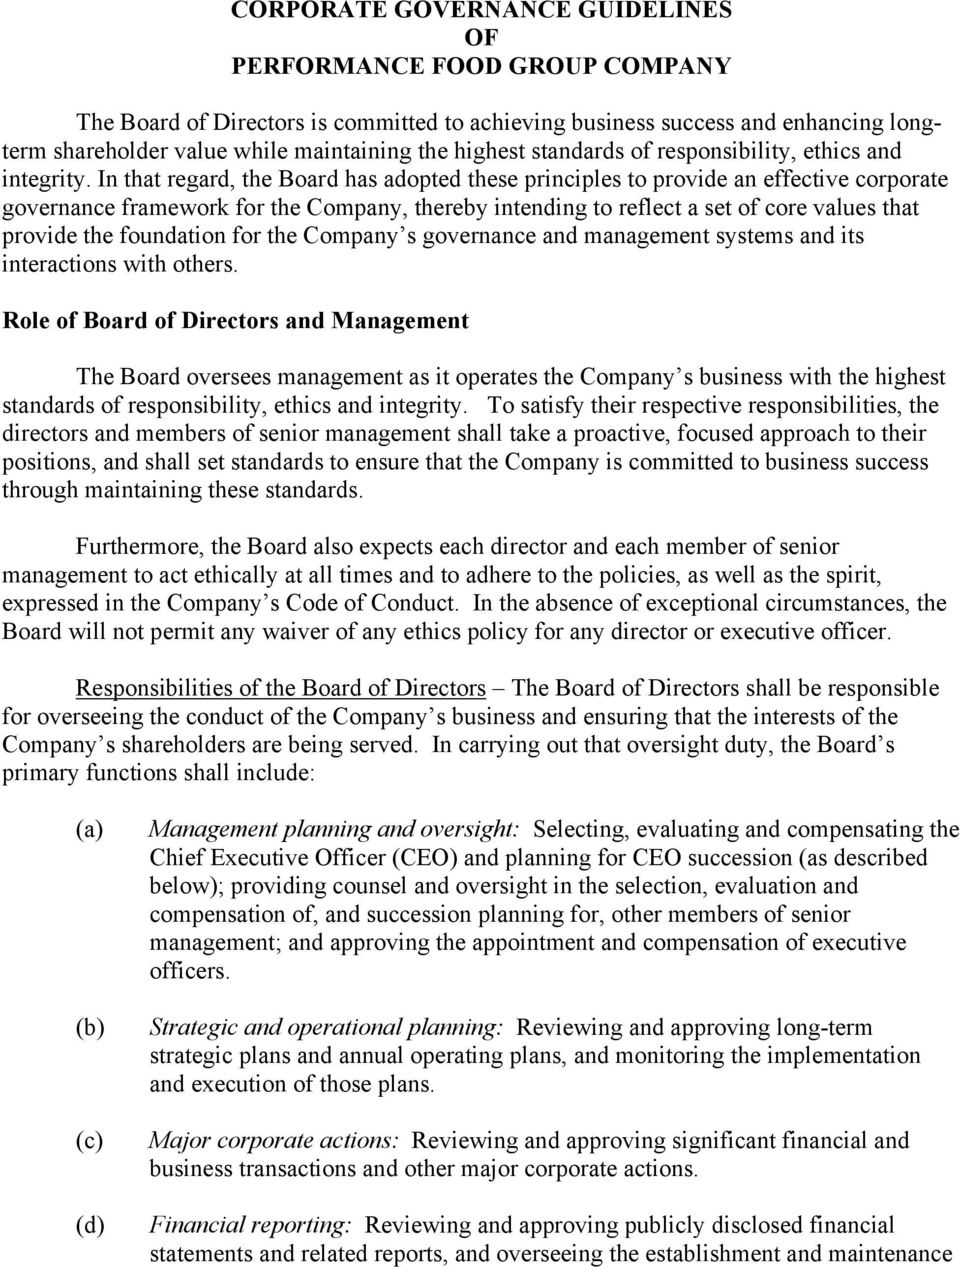 In that regard, the Board has adopted these principles to provide an effective corporate governance framework for the Company, thereby intending to reflect a set of core values that provide the